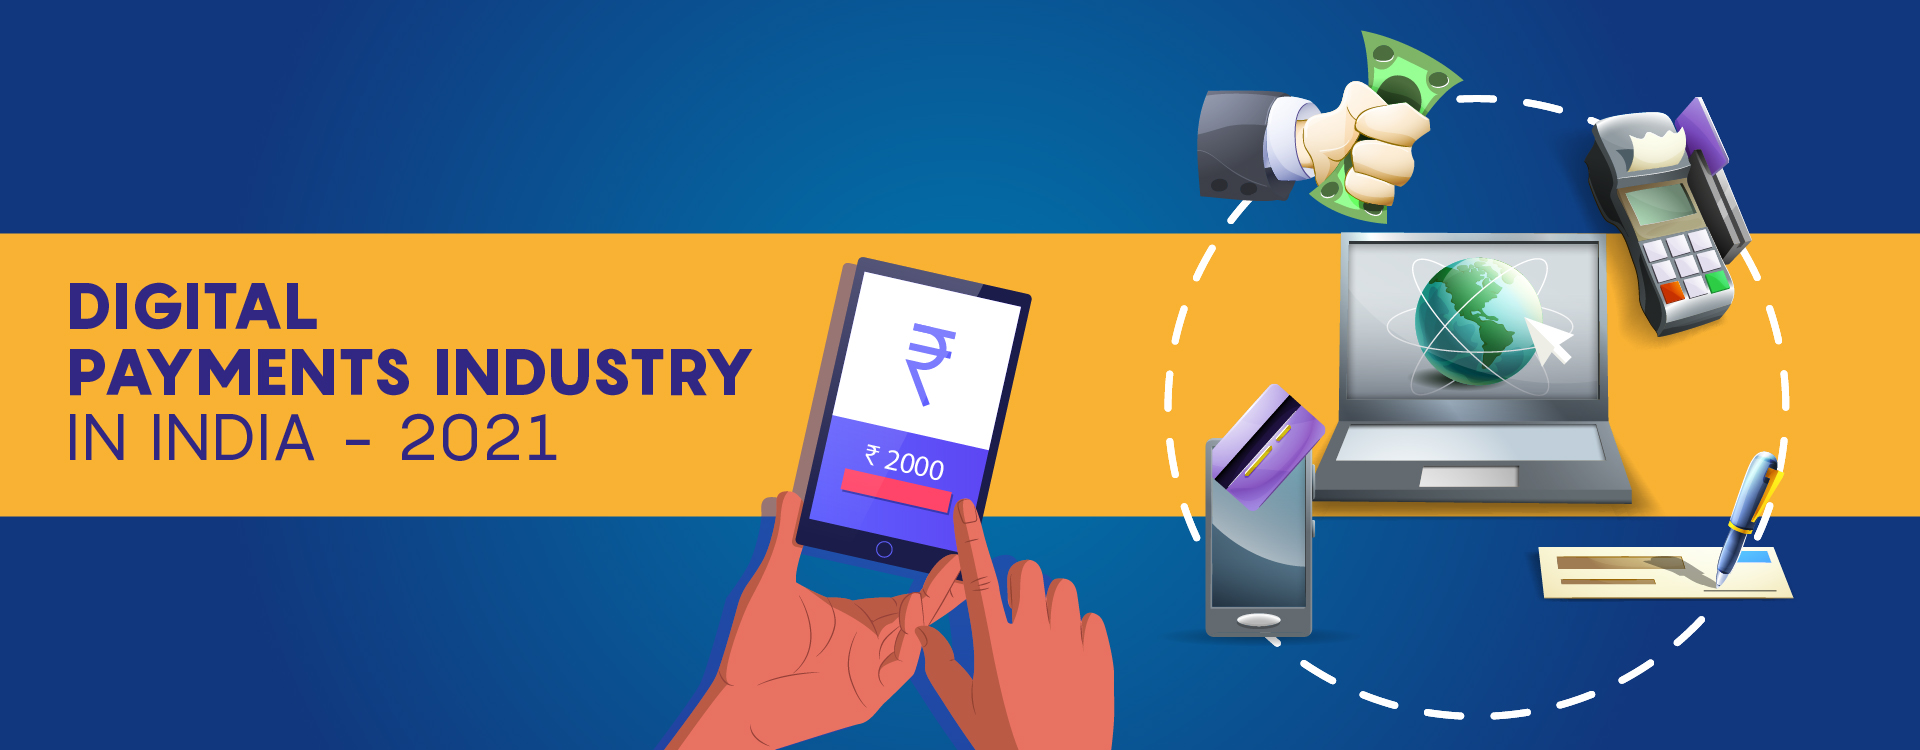 Payments Industry In India Is Growing - Learn more here.